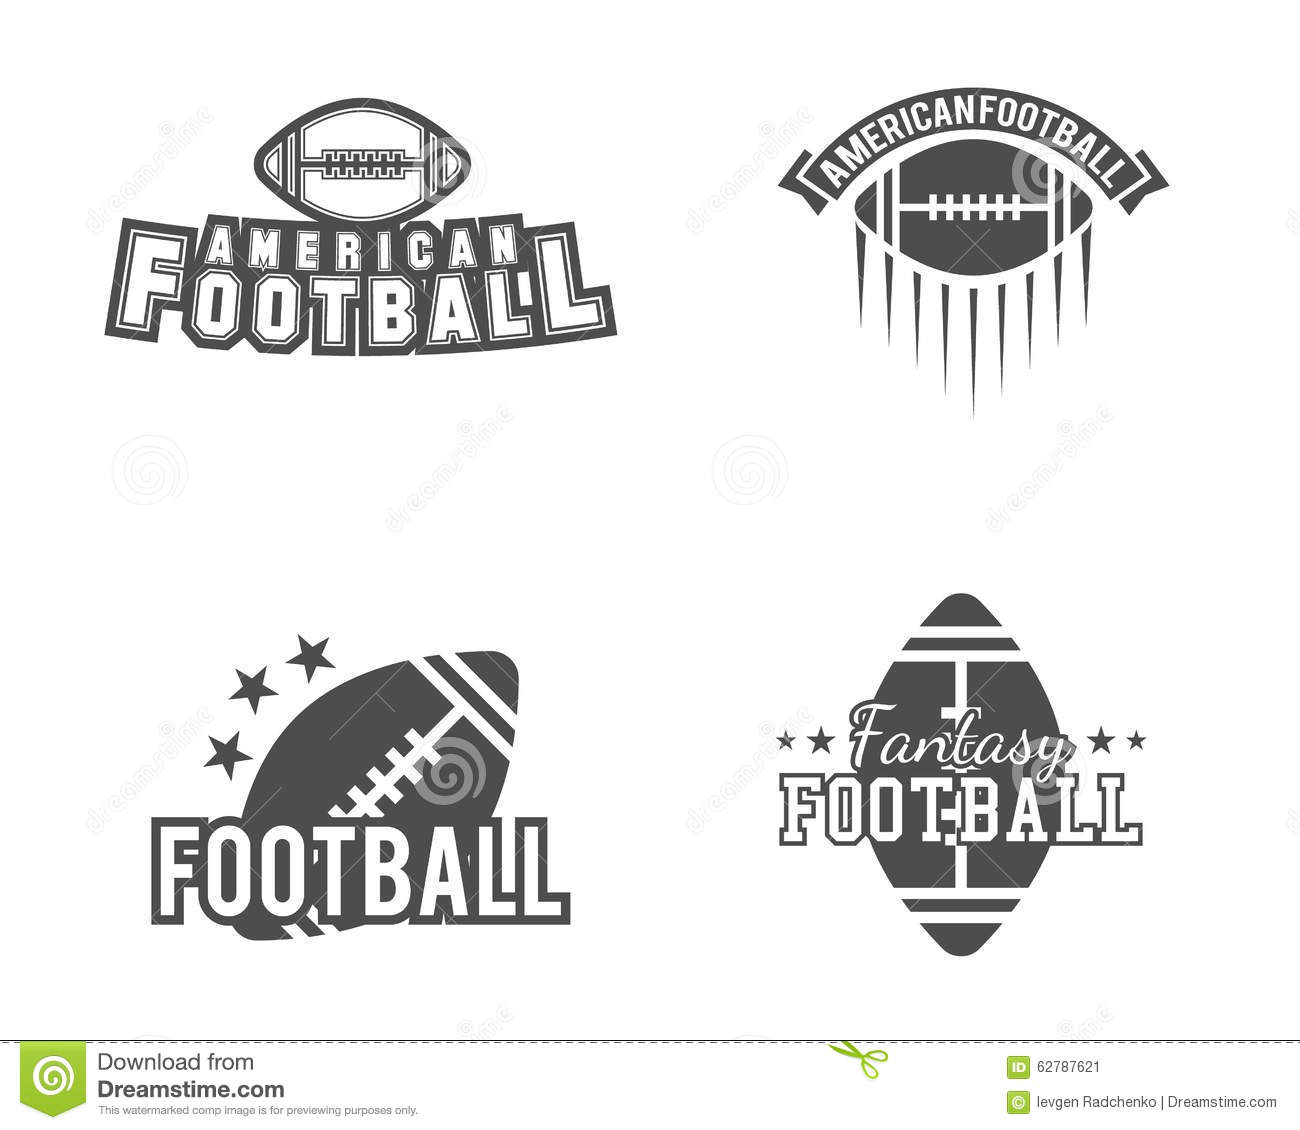 80c05b32c Royalty-Free Vector. American football team, college badges, logos